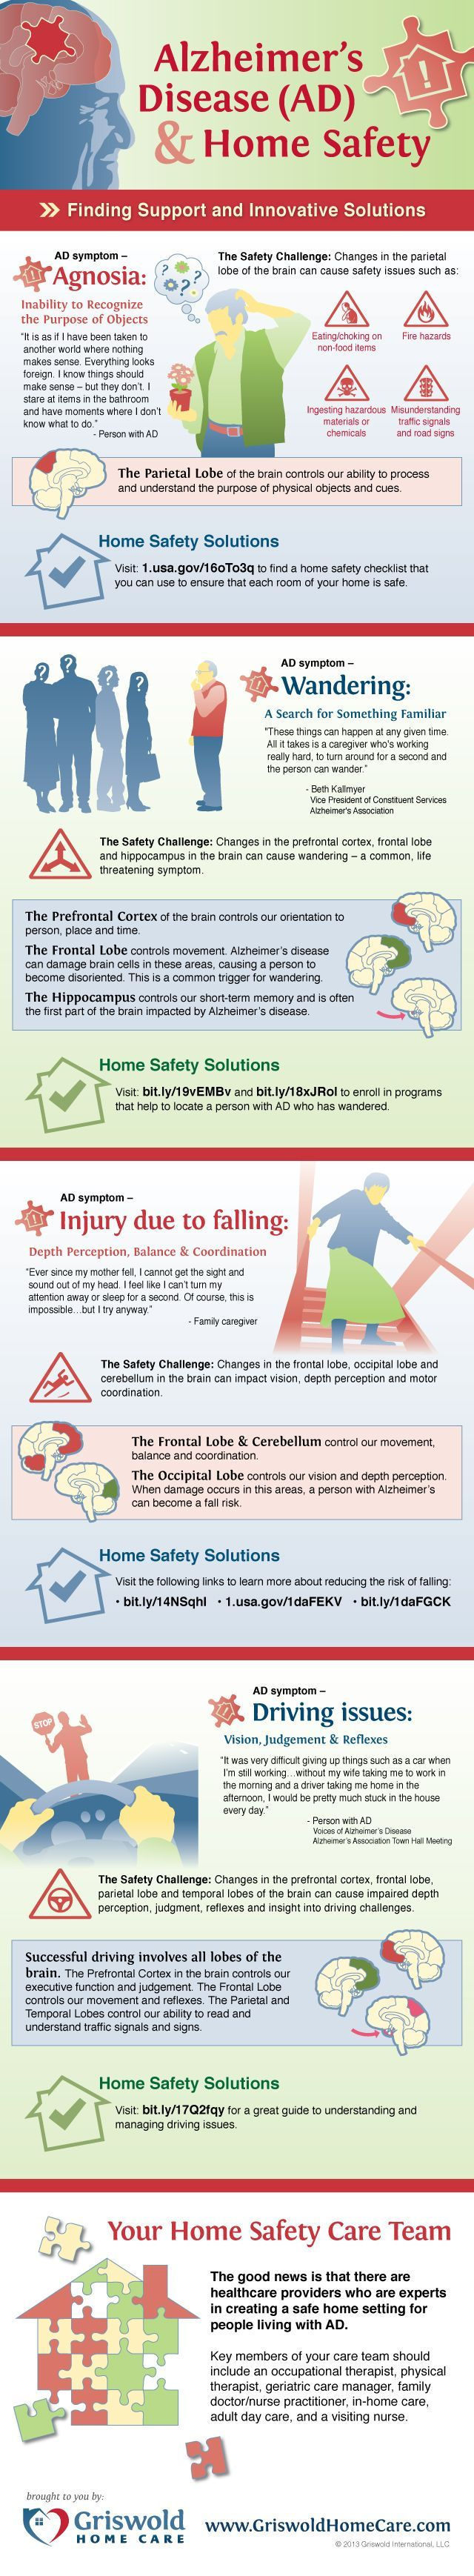 To celebrate National Safe at Home Week, Griswold Home Care has developed a visual snapshot of the common, yet serious safety issues that impact people with Alzheimer's Disease and their families / professional caregivers. #alzheimers #tgen www.mindcrowd.org/?utm_content=buffer051be&utm_medium=social&utm_source=pinterest.com&utm_campaign=buffer